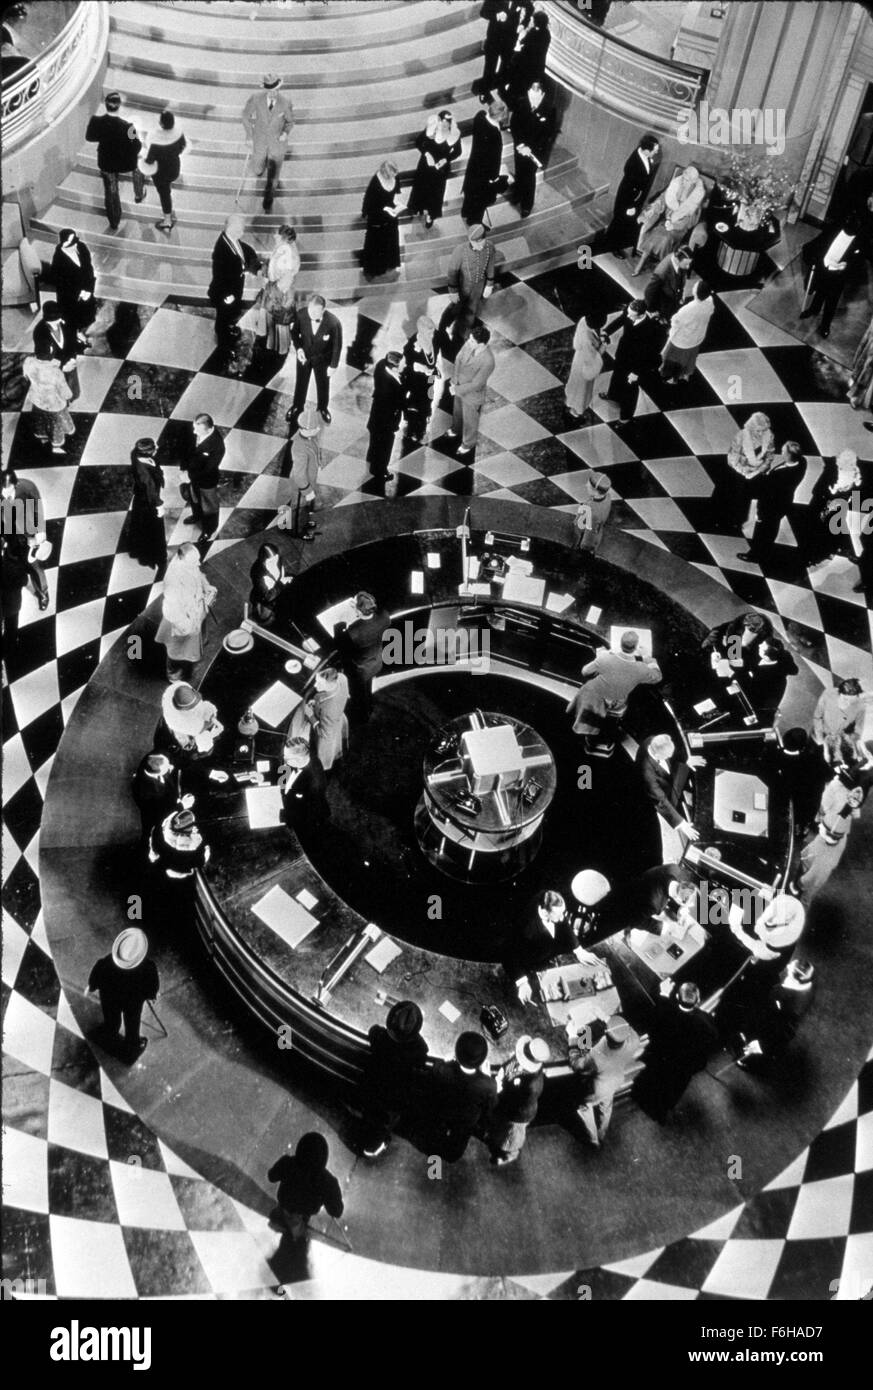 Pictured EDMUND GOULDING HOTEL LOBBY MOVIE SET NYC RITZ TOWERS BIRDS EYE VIEW AERIAL SHOT CIRCULAR PATTERN ABSTRACT FOYER PEOPLE